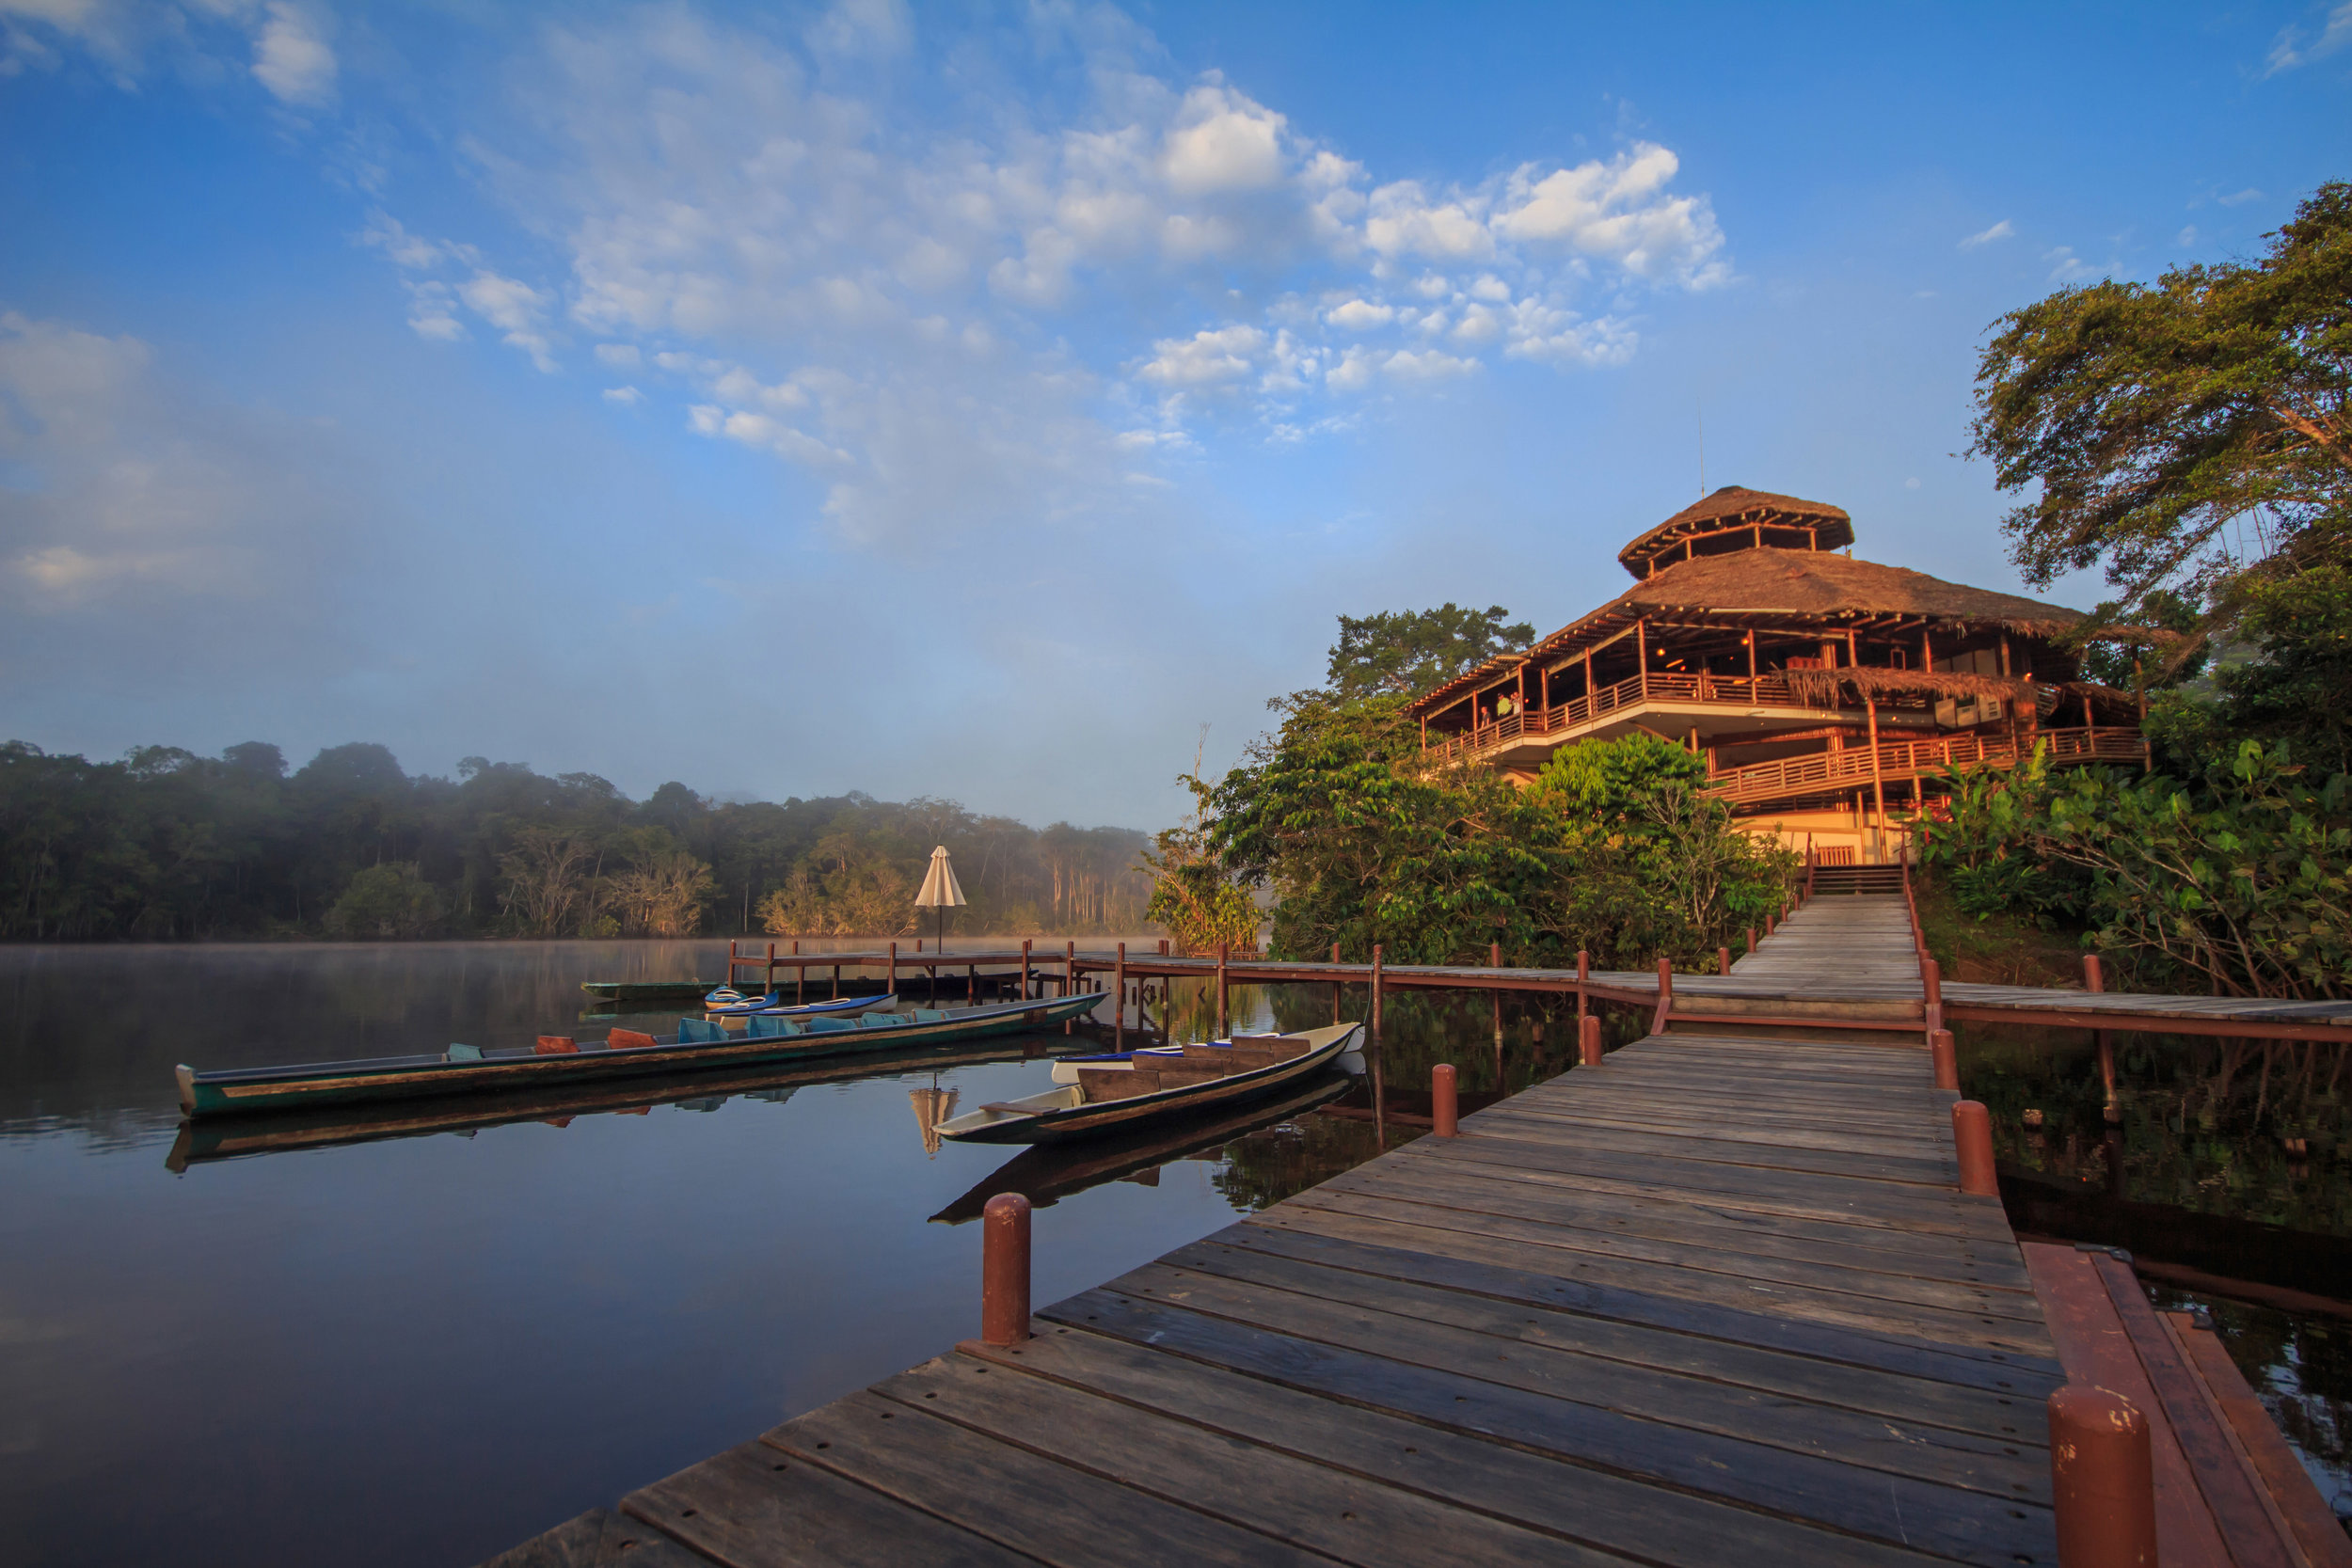 La Selva Jungle Lodge in the Amazon